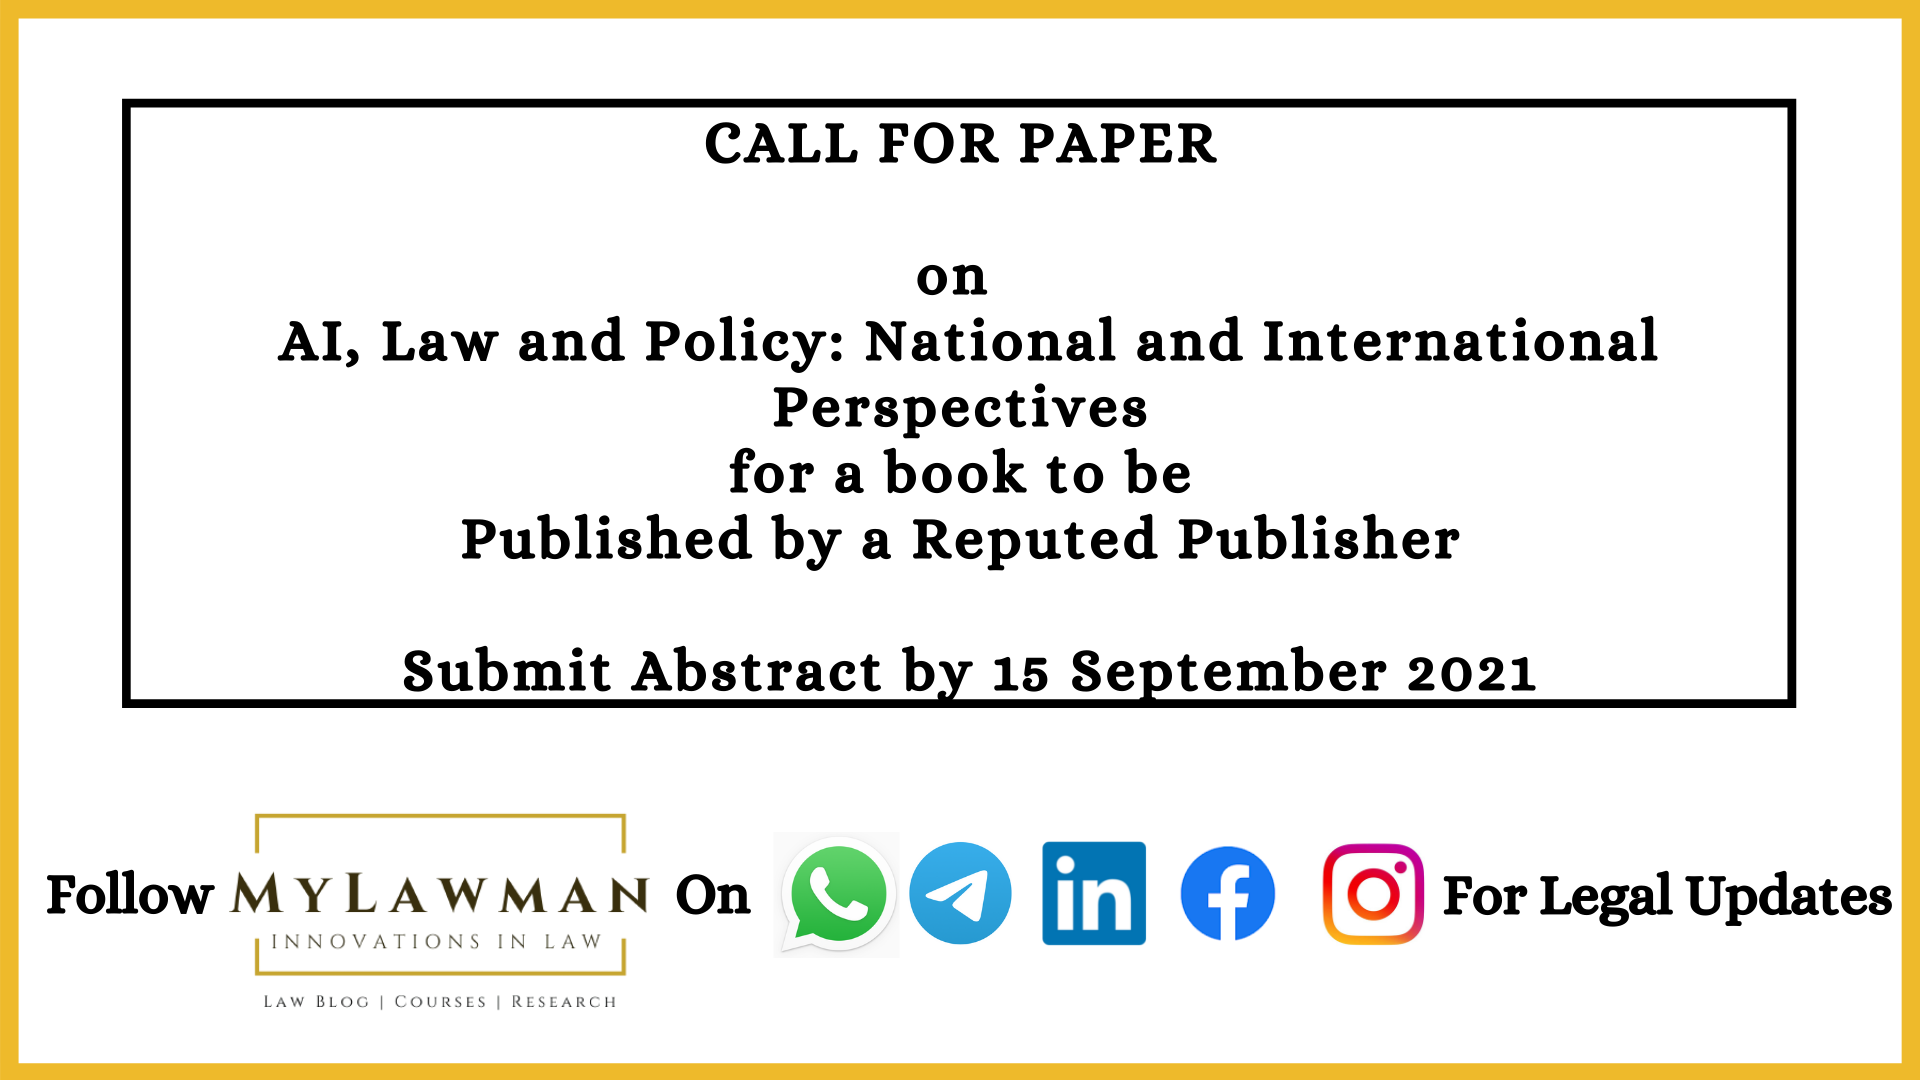 [Call for Papers] On AI, Law and Policy: National and International Perspectives for a book to be Published by a Reputed Publisher [Submit Abstract by 15 September 2021]